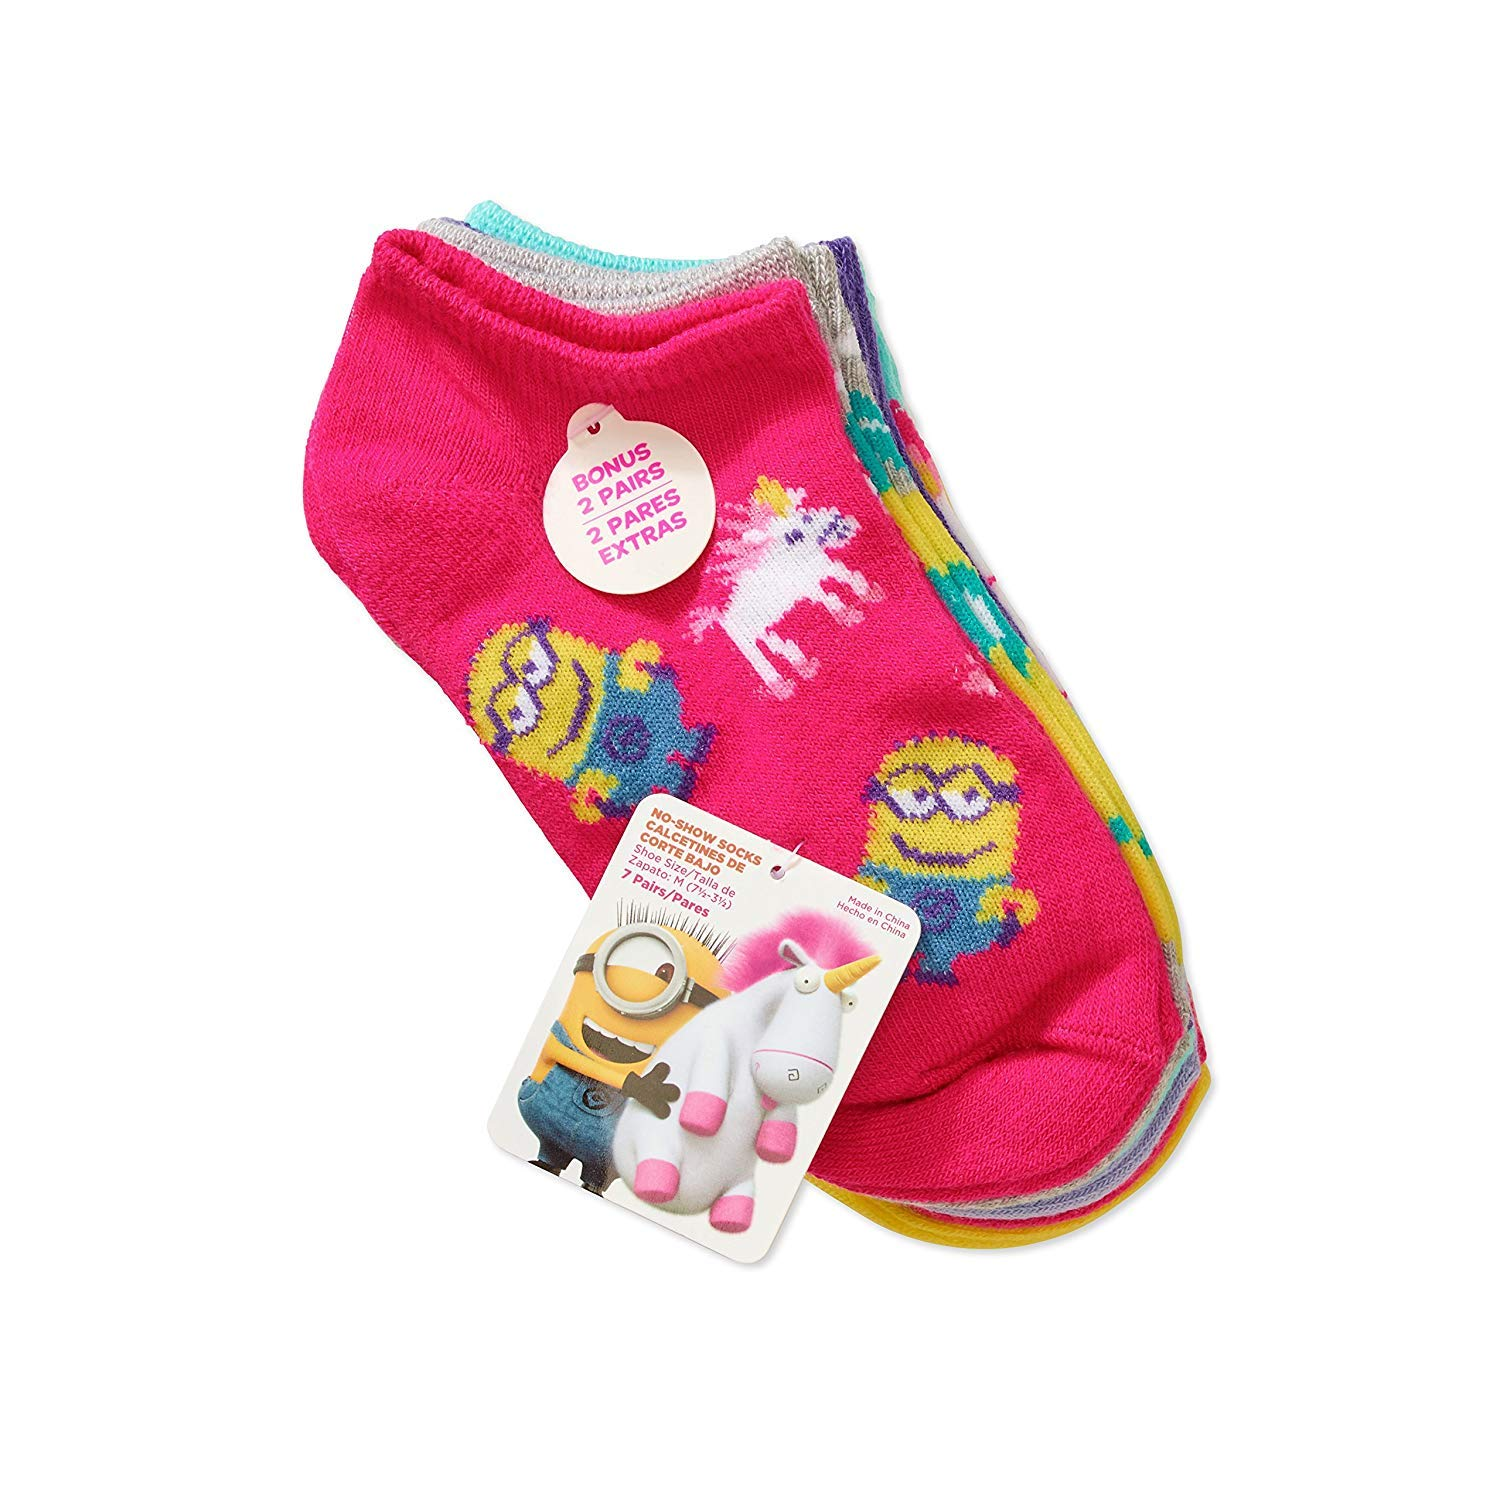 Amazon.com: Despicable Me Minions Big Girls No shows Socks 7pairs Set Pink size Large 4-10: Clothing